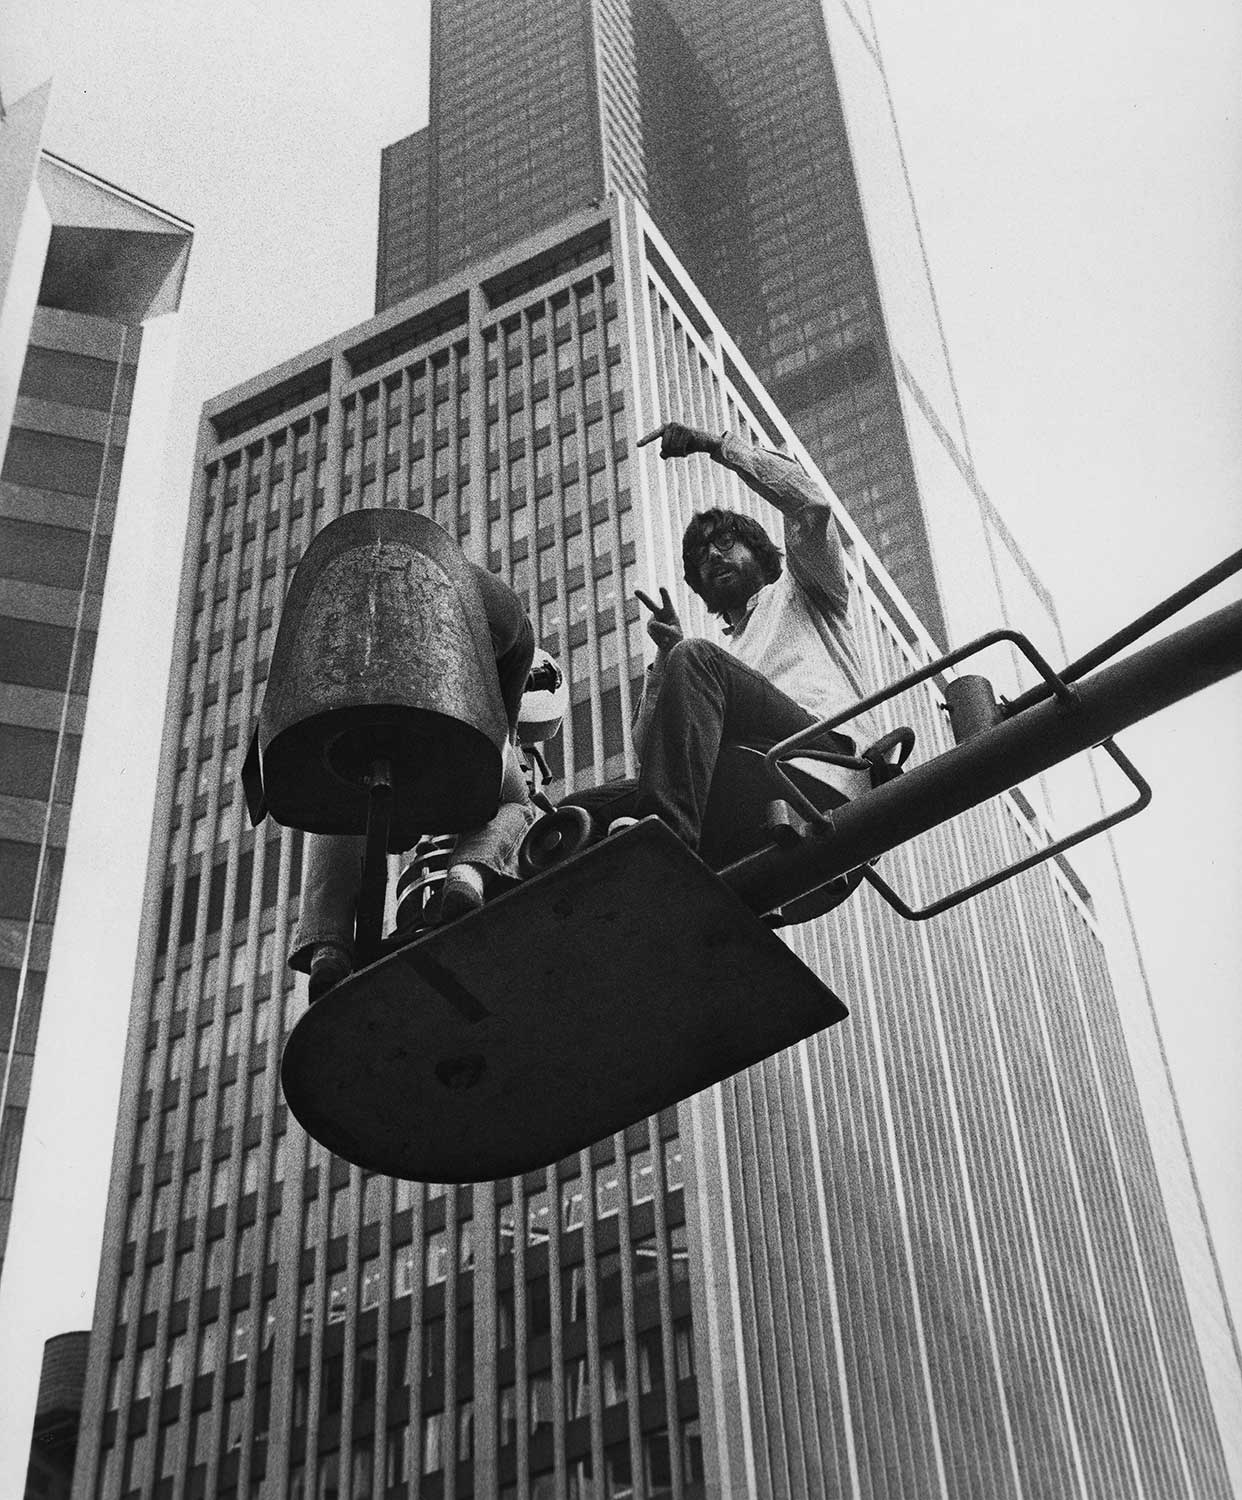 Director John Landis directs a scene from THE BLUES BROTHERS, which involved numerous spectacular sequences including a car crash through the window of the Richard J. Daley Center.